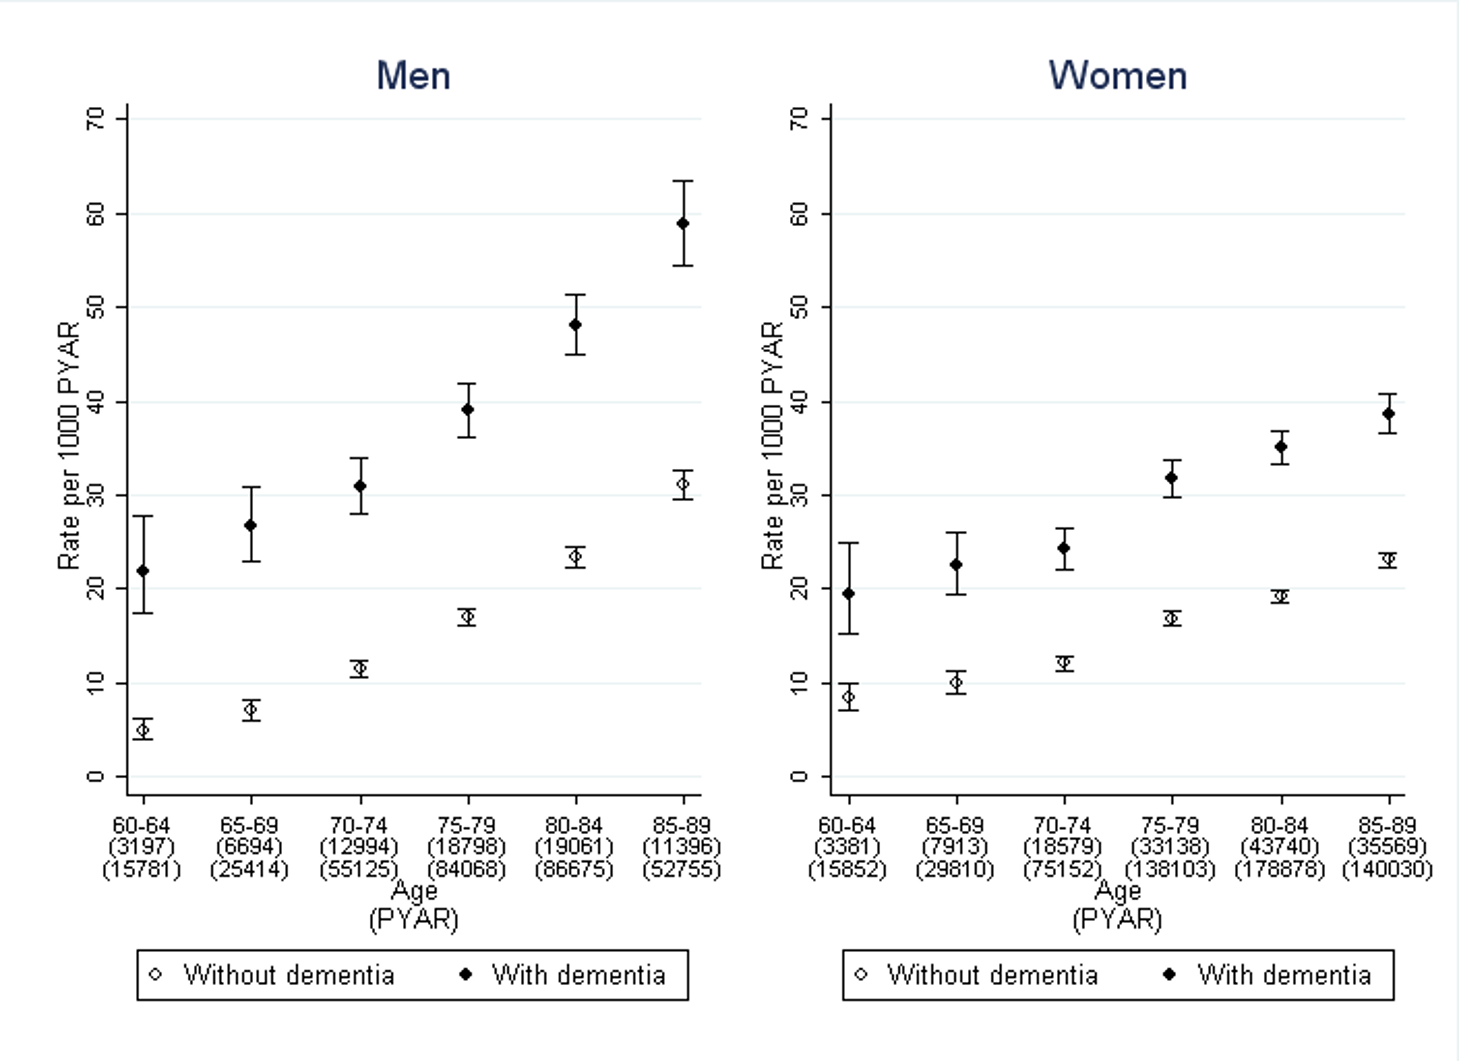 Rates of first diagnosis of incontinence in men and women with dementia compared to those without.